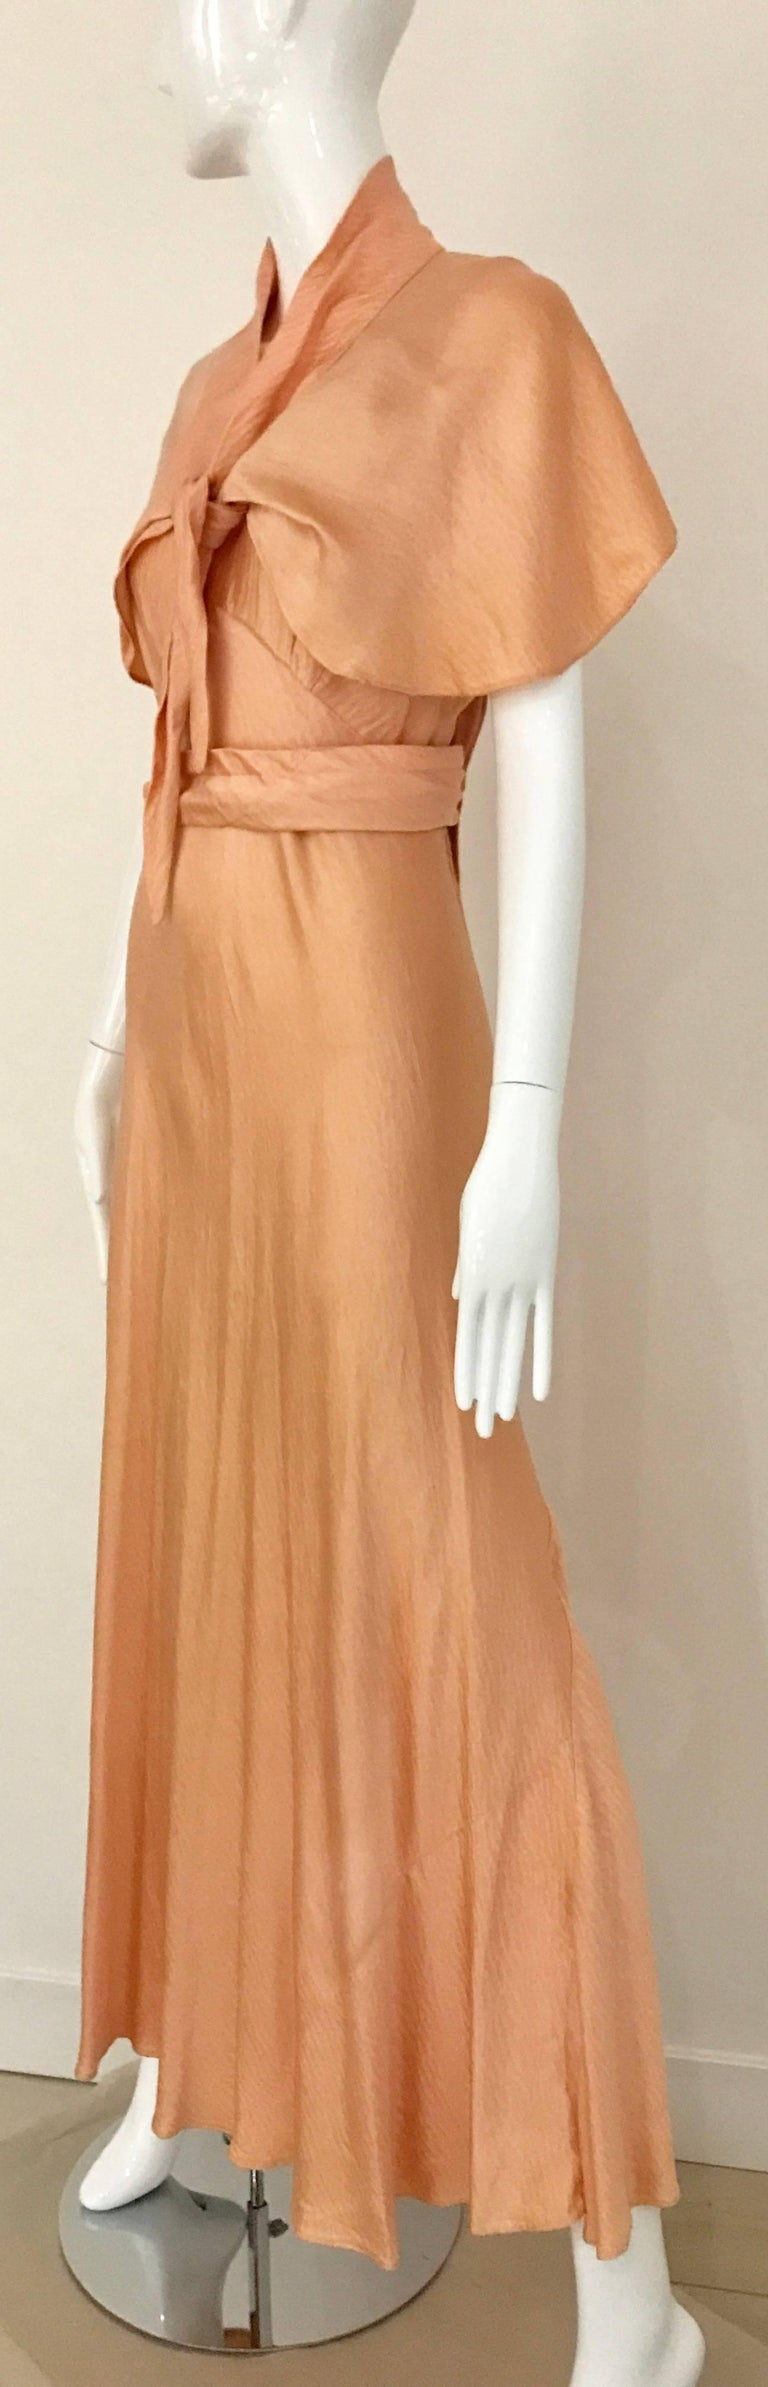 Women's 1930s Peach Silk Bias Cut Dress with Shawl Capelet  For Sale